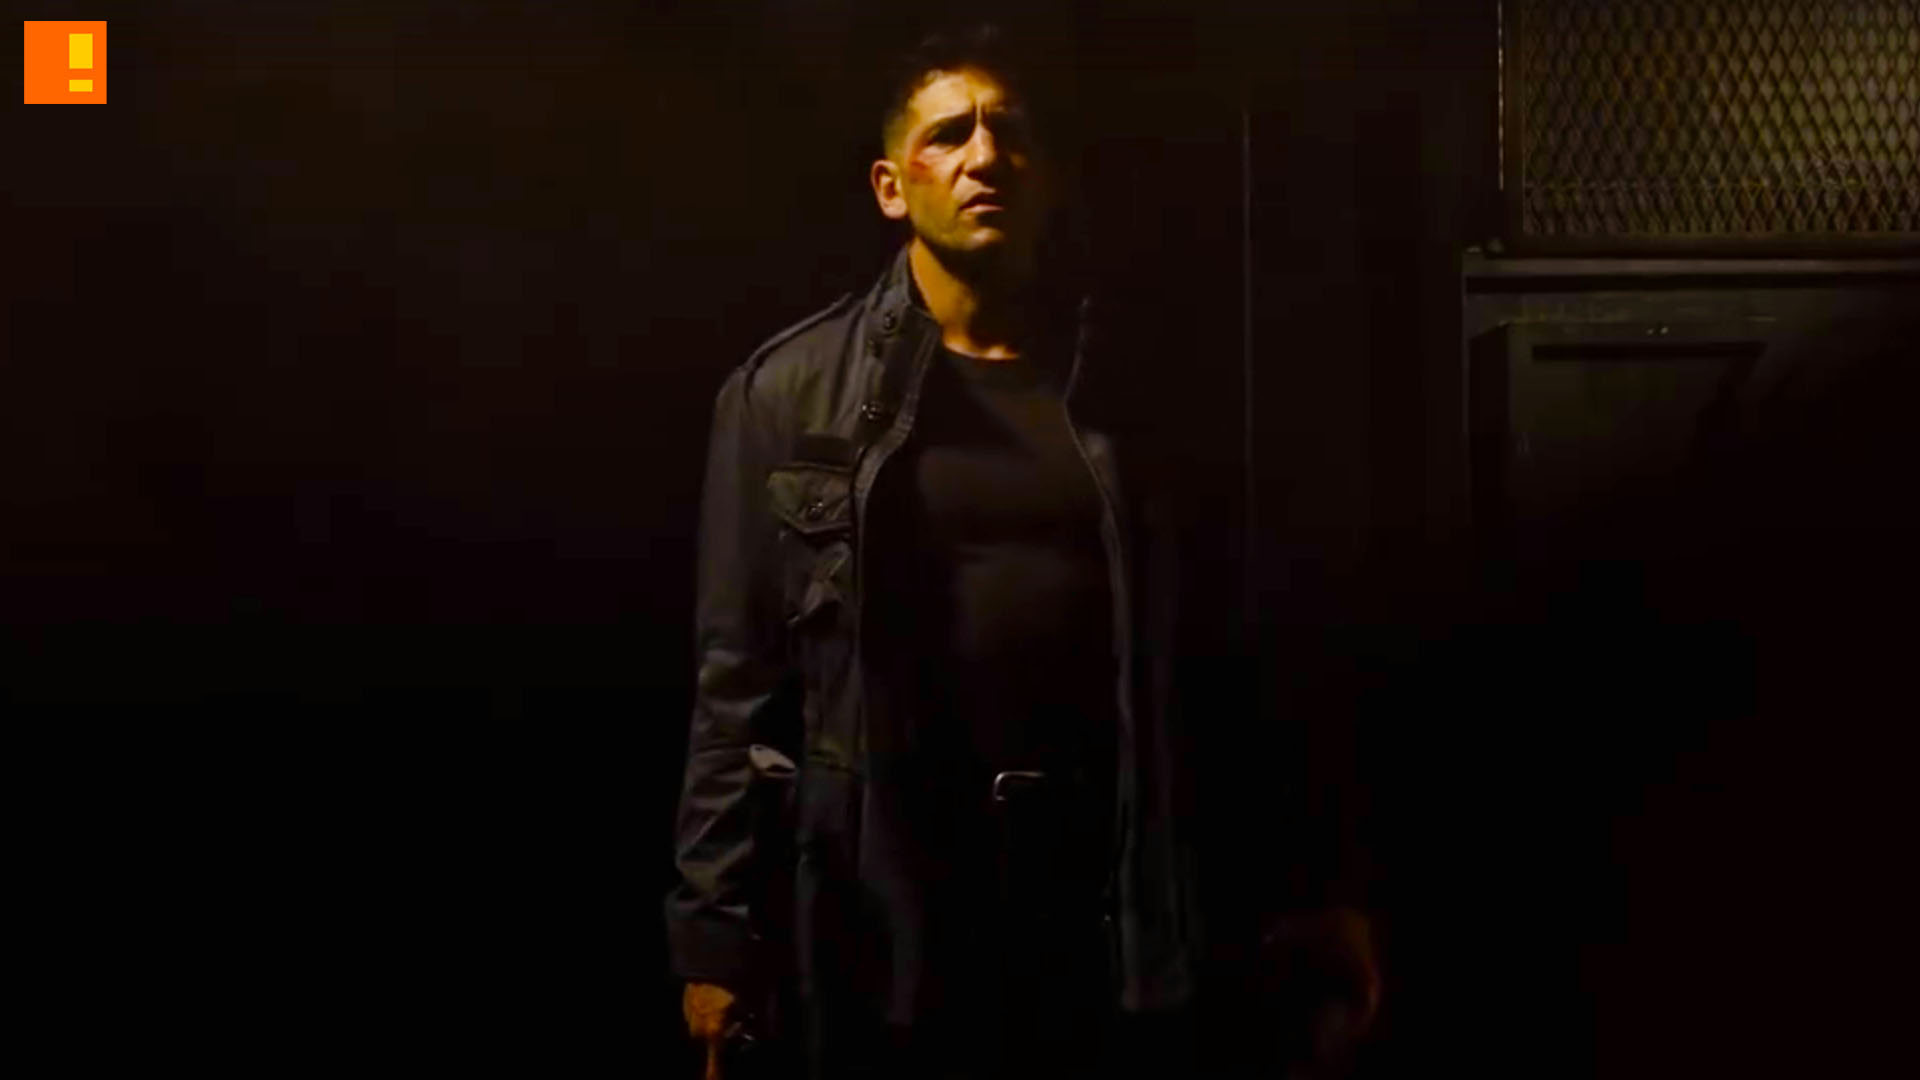 Daredevil S2 Punisher Promo The Action Pixel